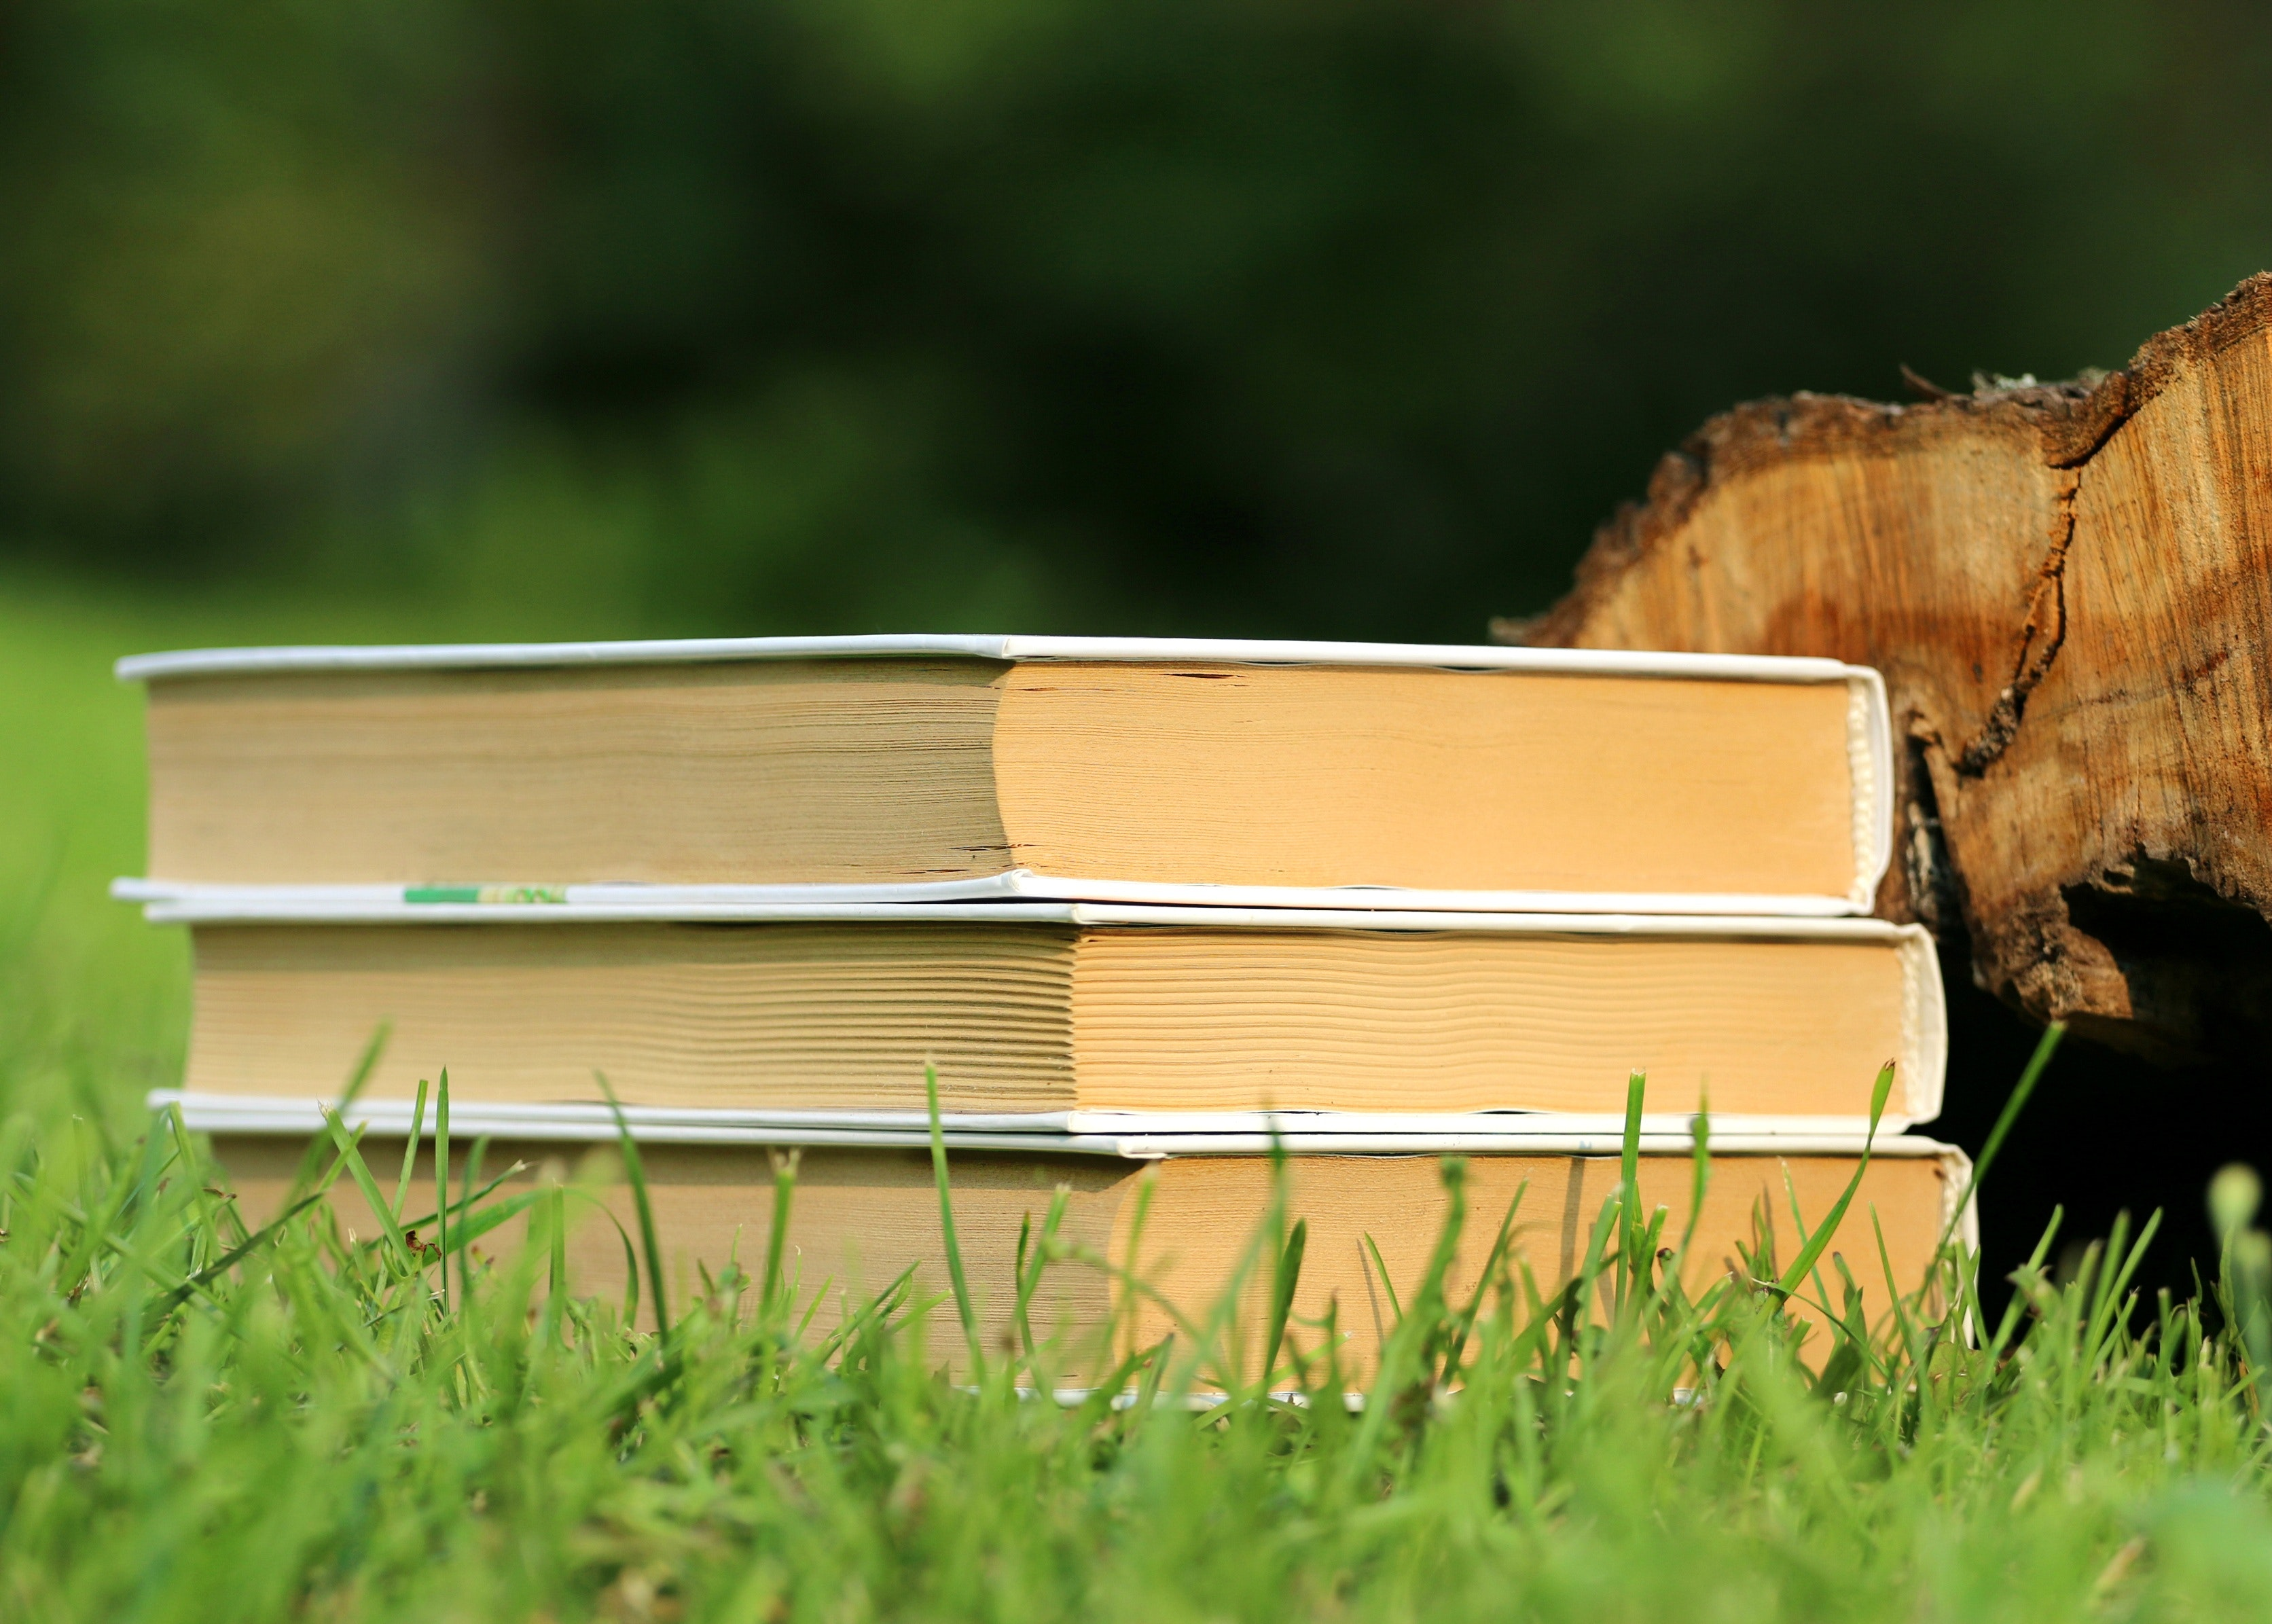 selective-focus-photography-of-3-book-piled-159544.jpg